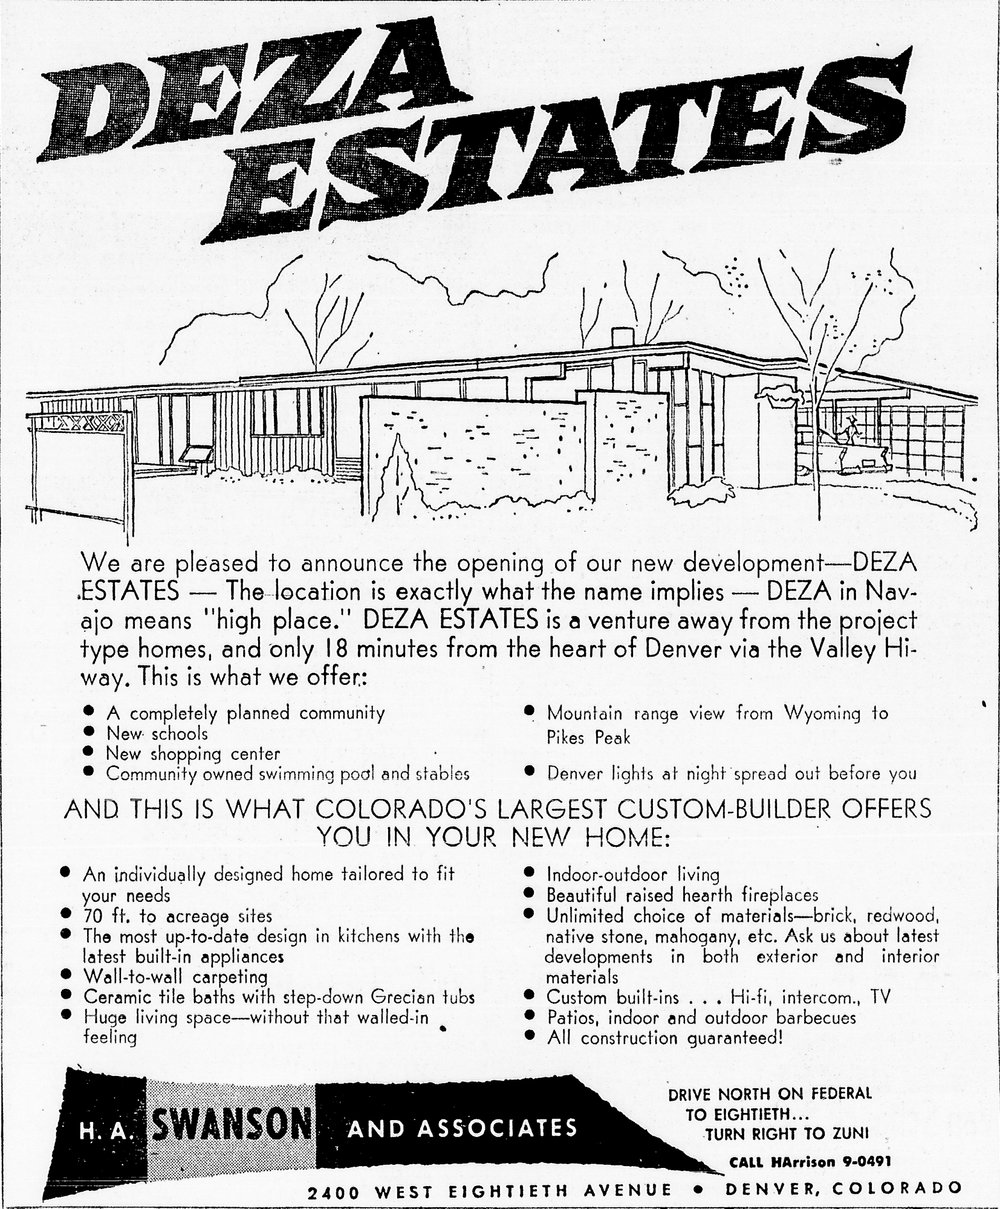 This is the original advertisement for the Deza Estates neighborhood in Northglenn, Colorado that was in the Denver Post in 1956.